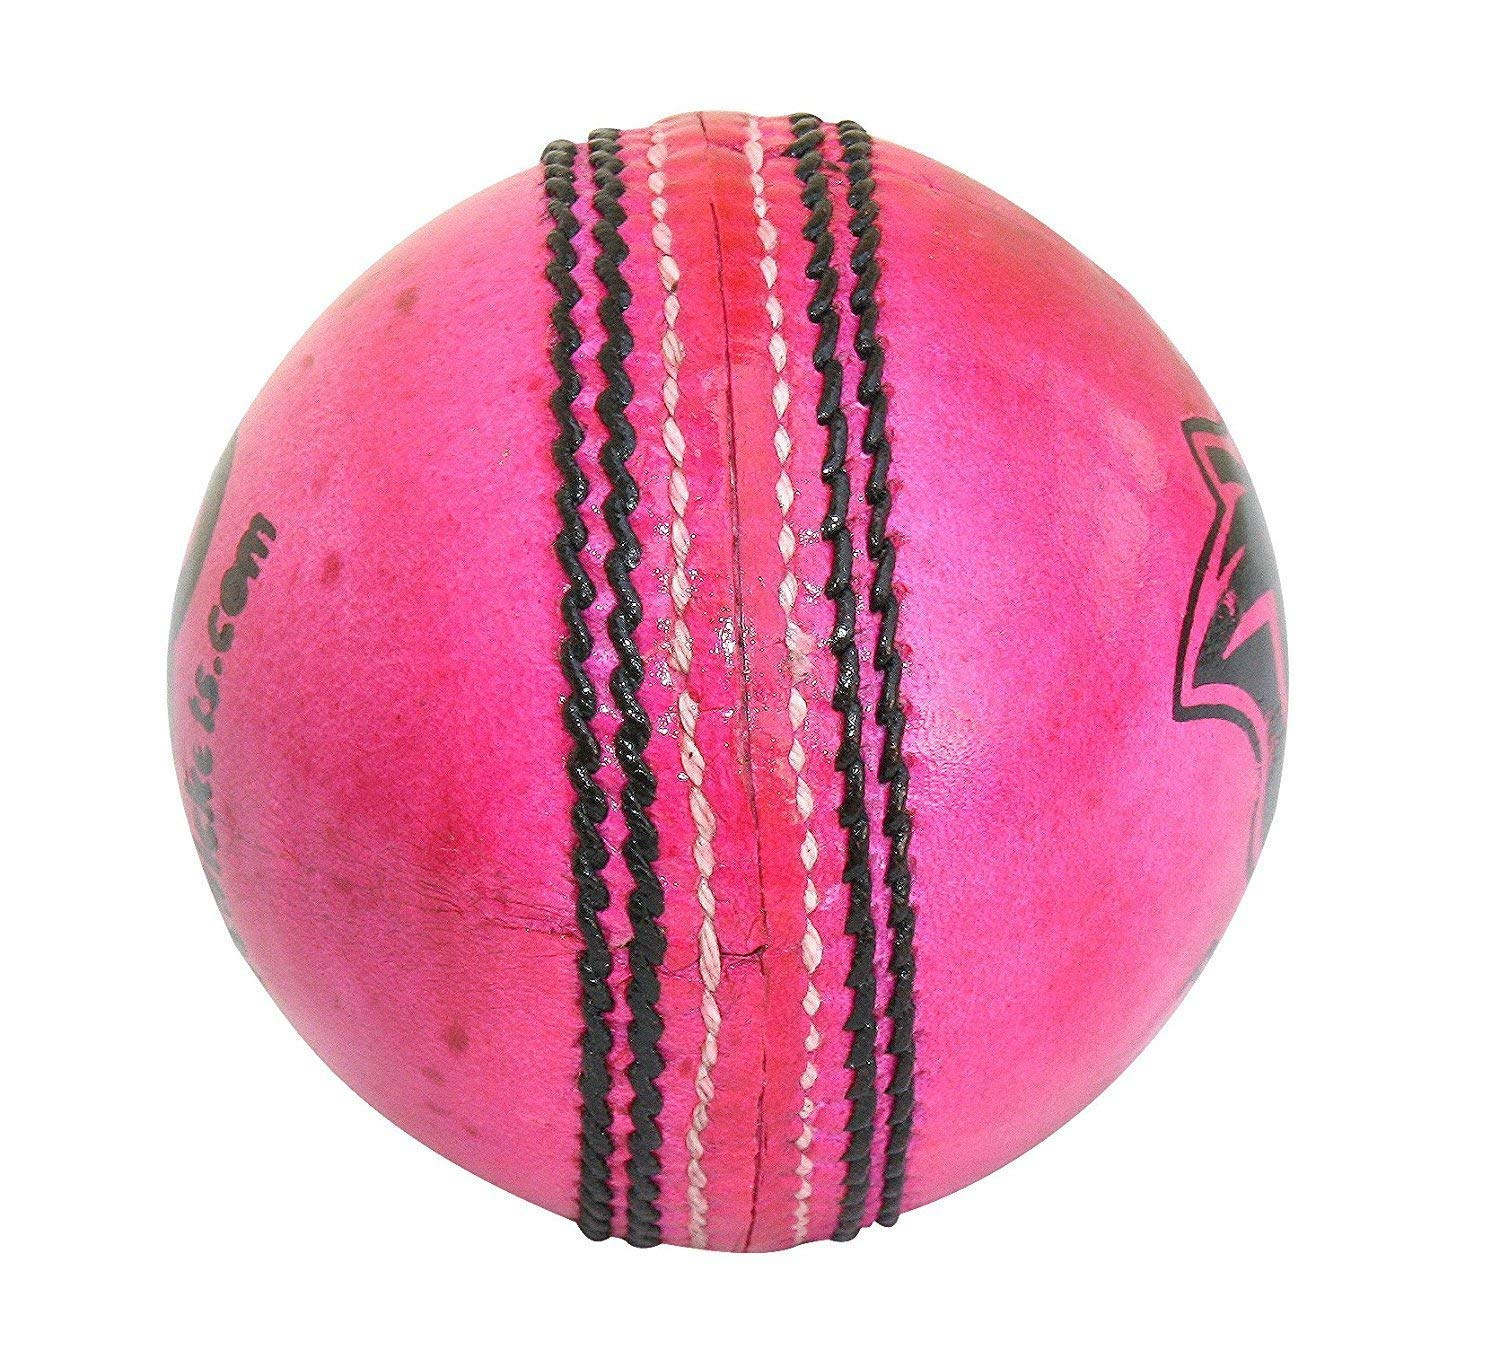 Leather Cricket Ball For Practice And Knocking Cricket Ball With Rope